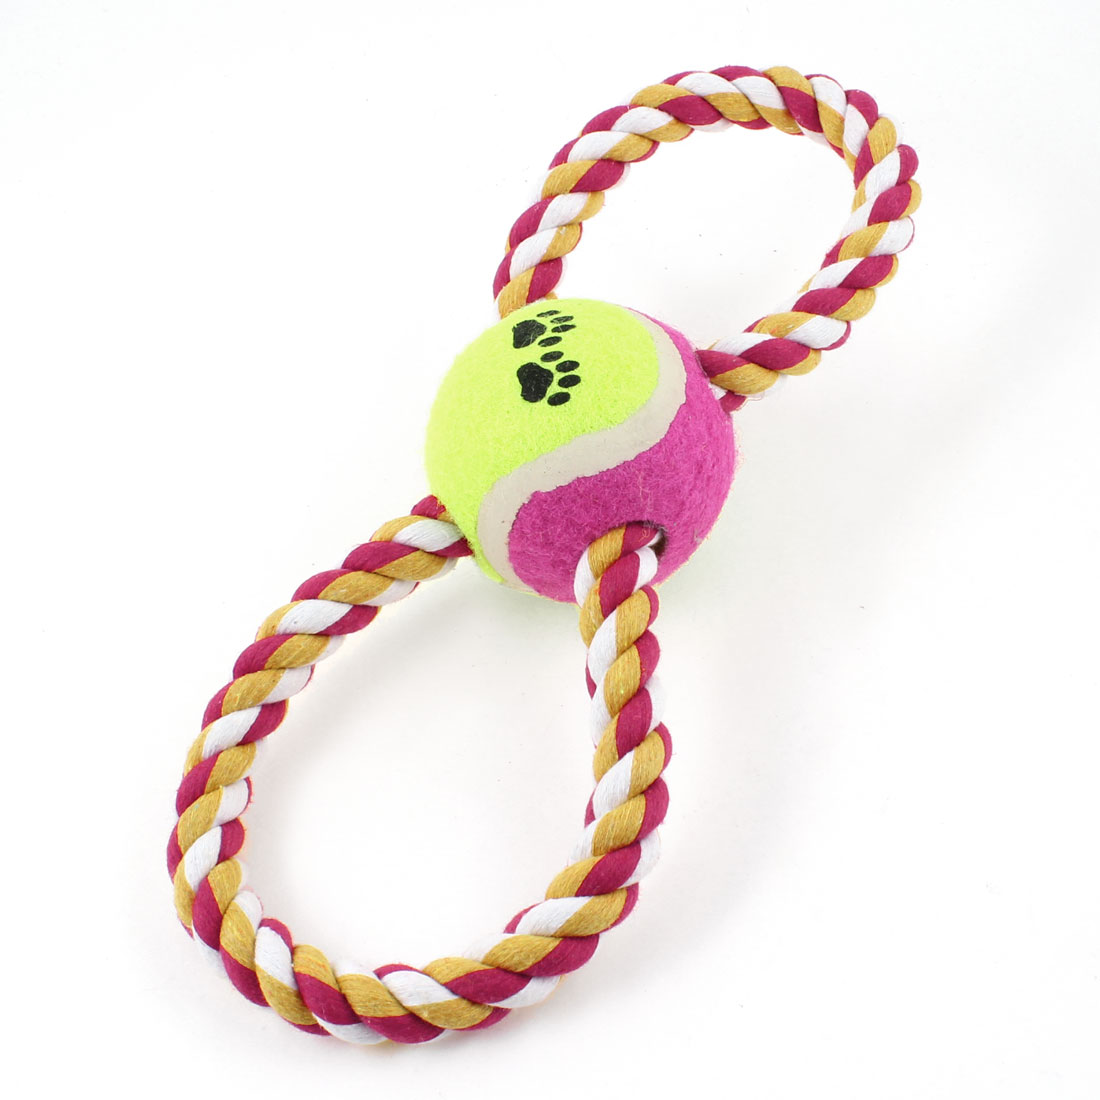 Pet Dog Puppy Yellowgreen Fuchsia Ball 8 Shape Knot Rope Tug Training Toy